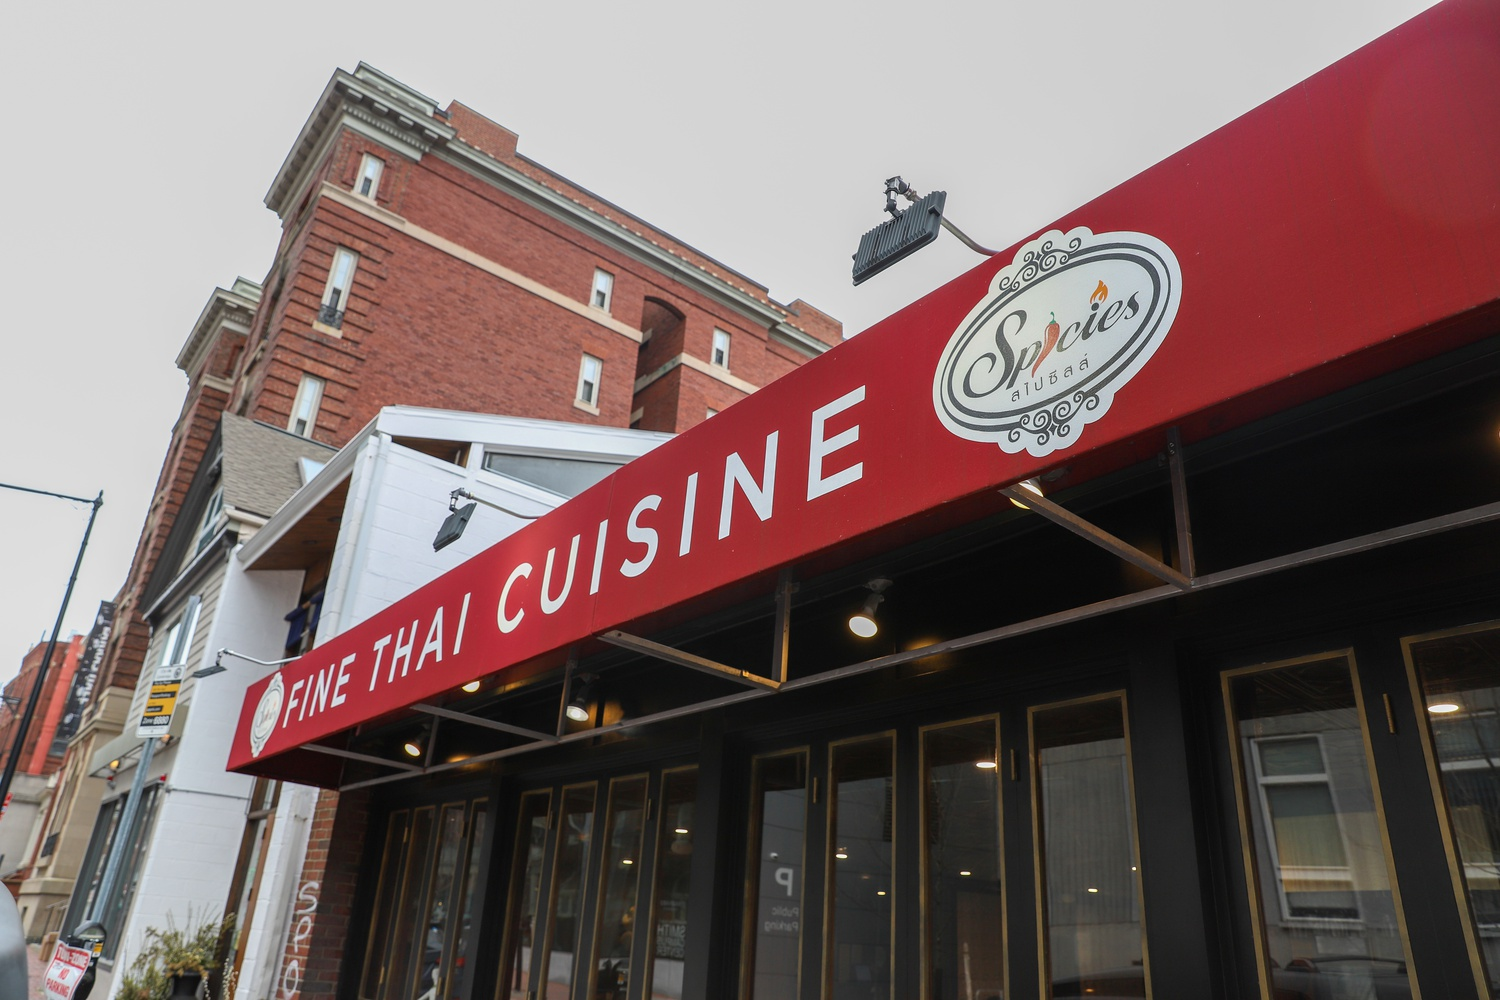 Harvard Square Thai restaurant Spicies will close in a matter of weeks, the restaurant confirmed Thursday.